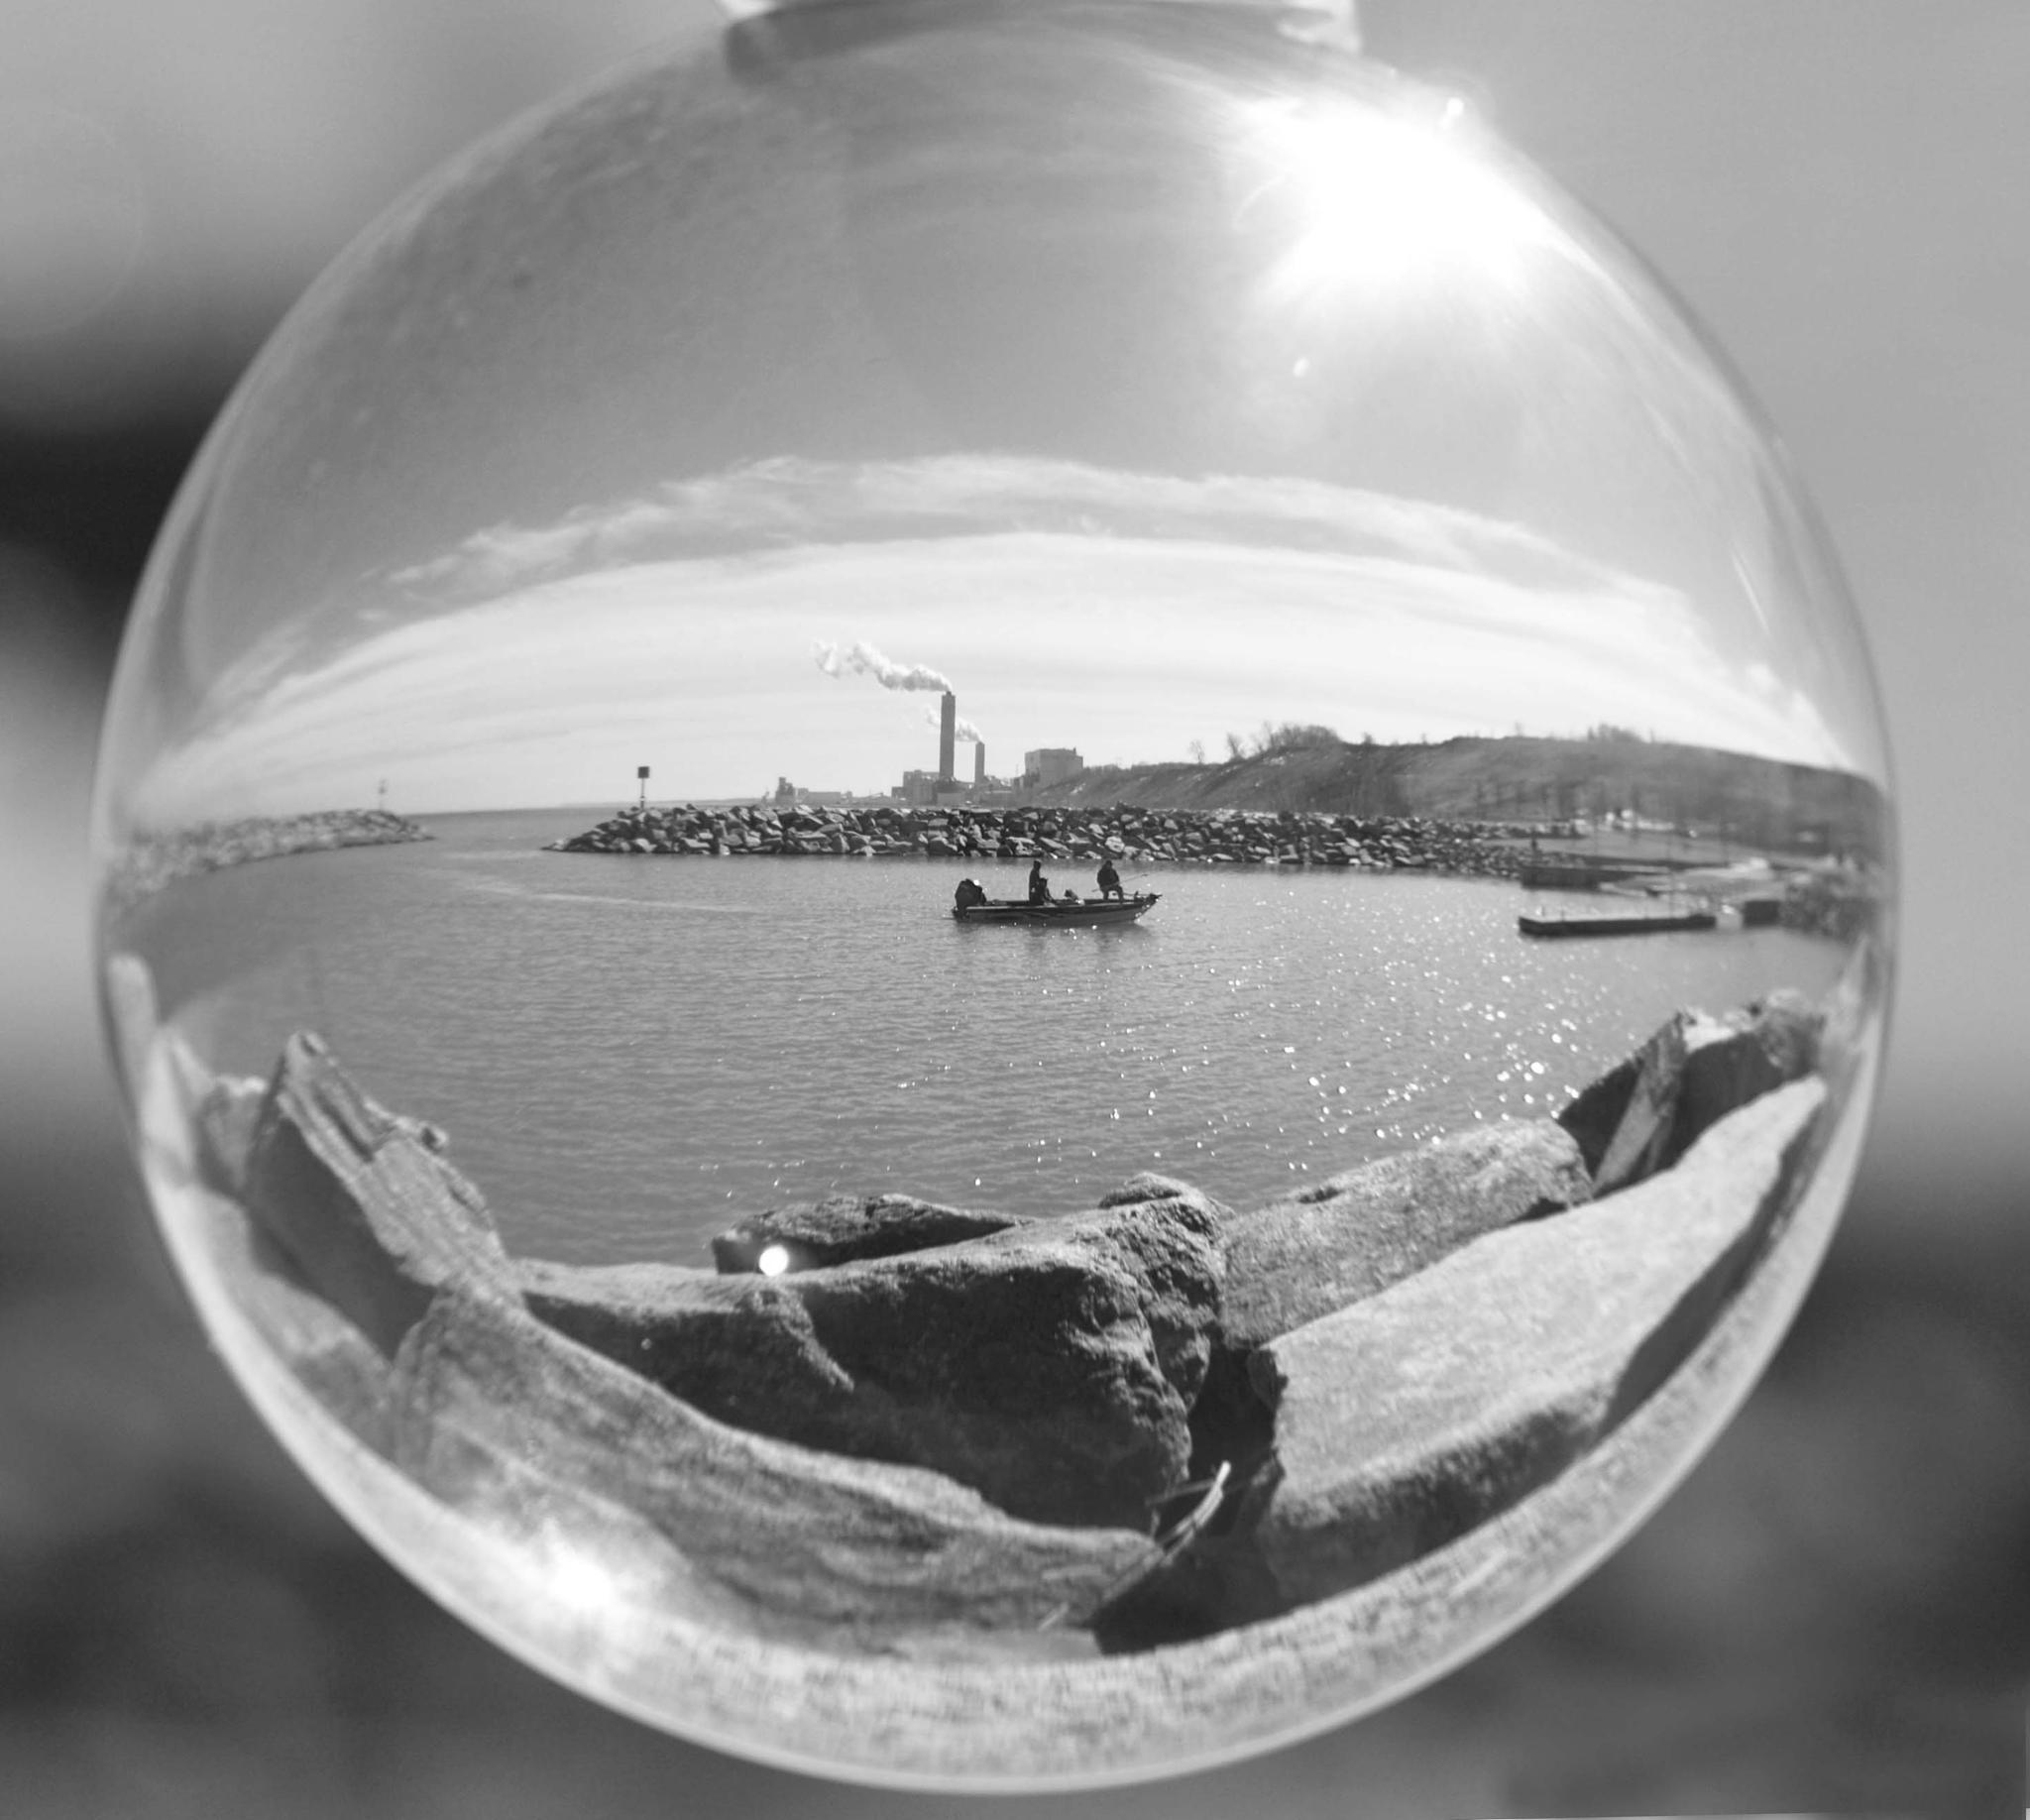 Boat in a bubble by Christine Grubbs